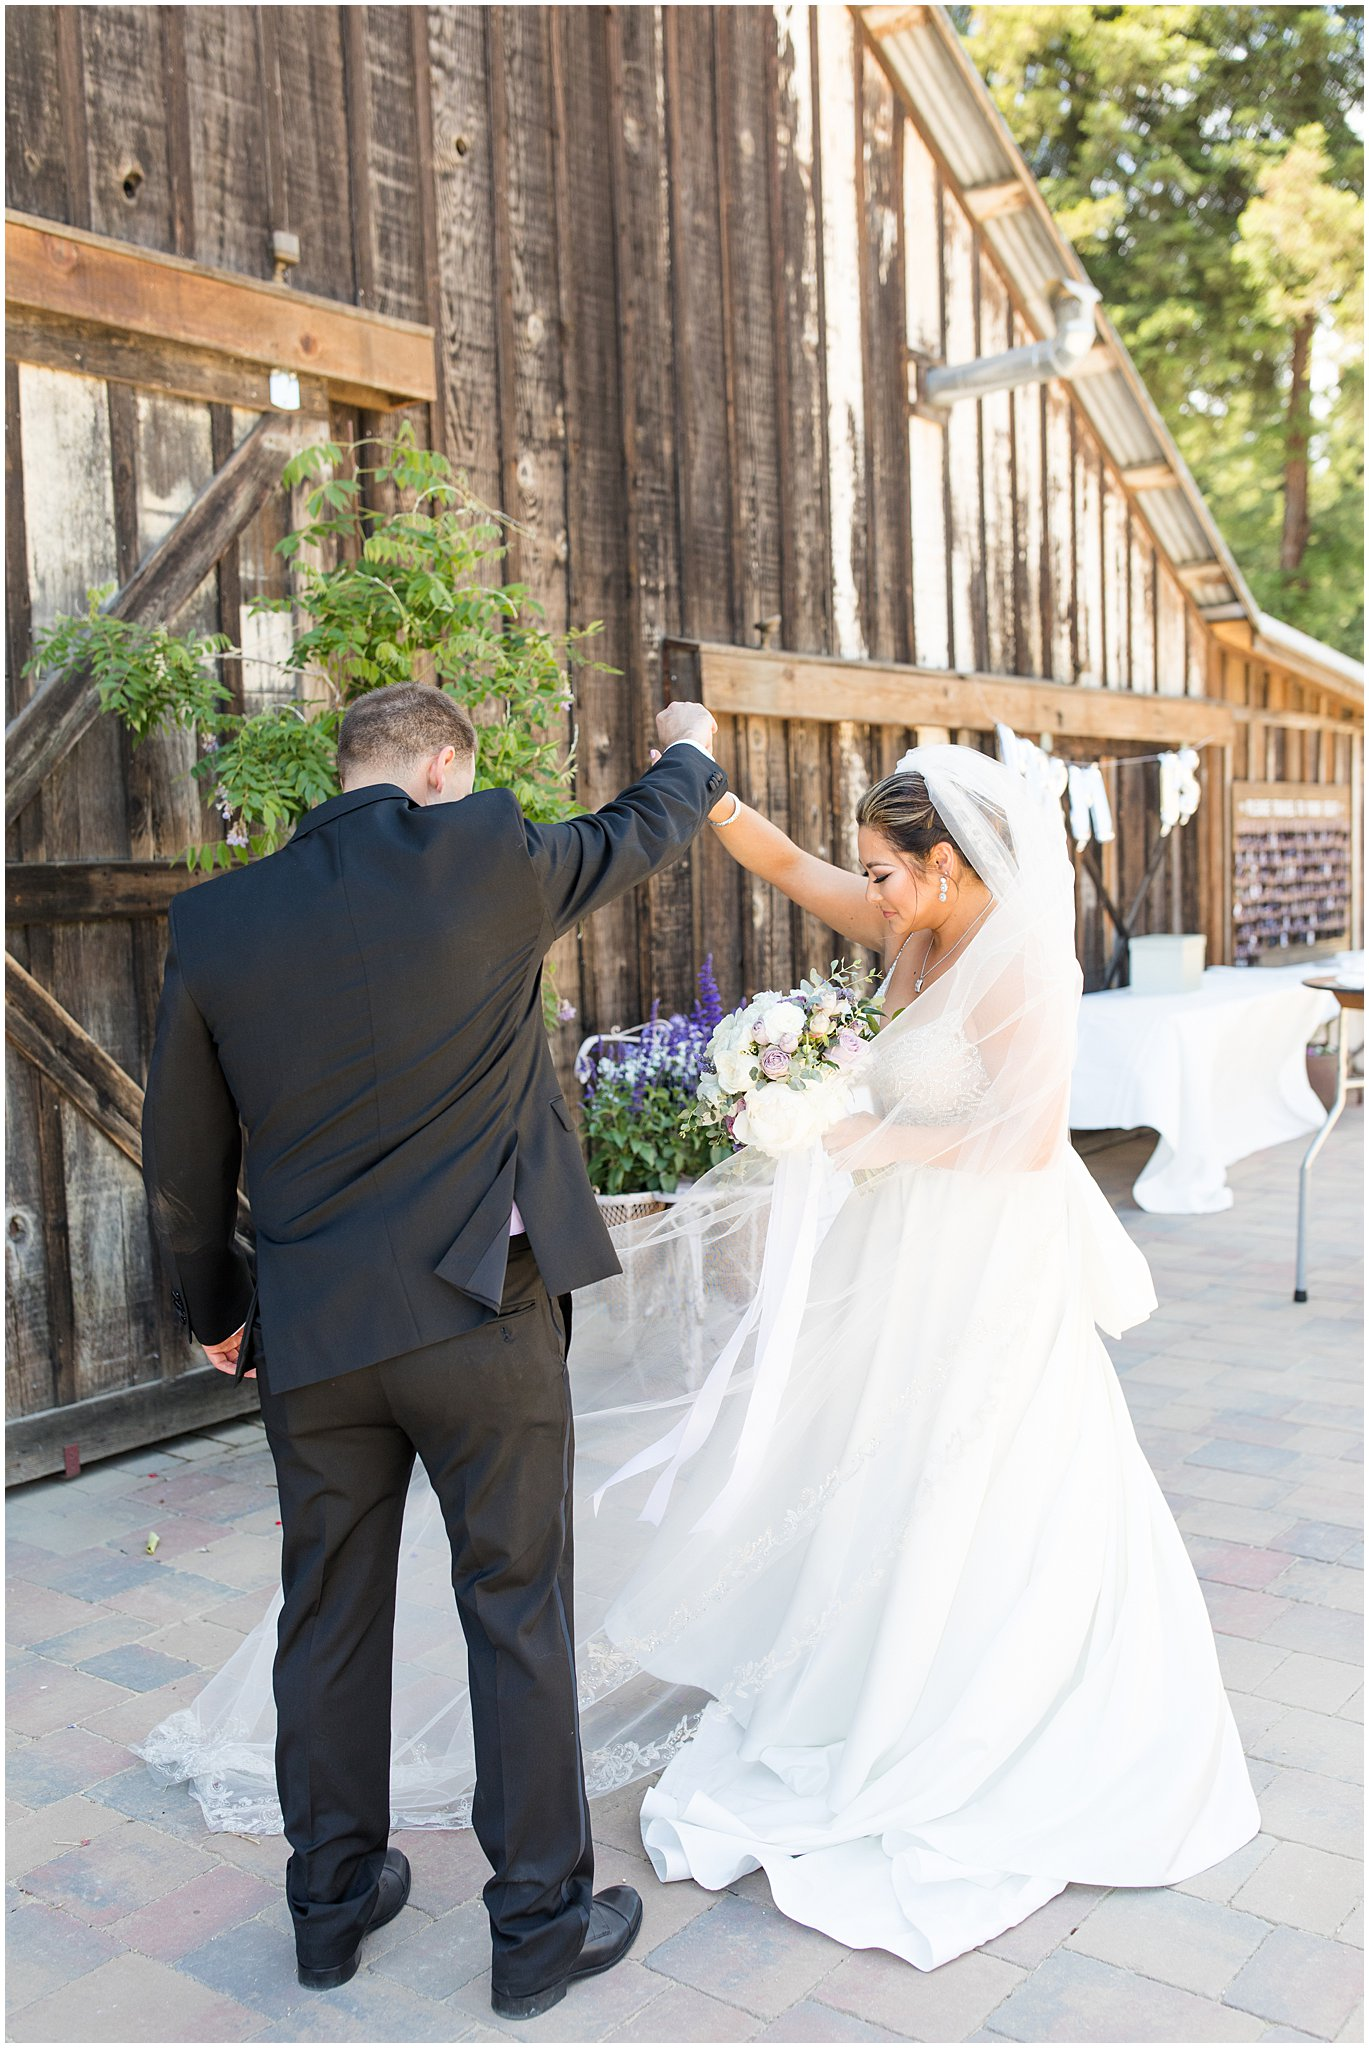 2019 wedding san juan bautista hacienda de leal vineyards bay area wedding photographer_0018.jpg